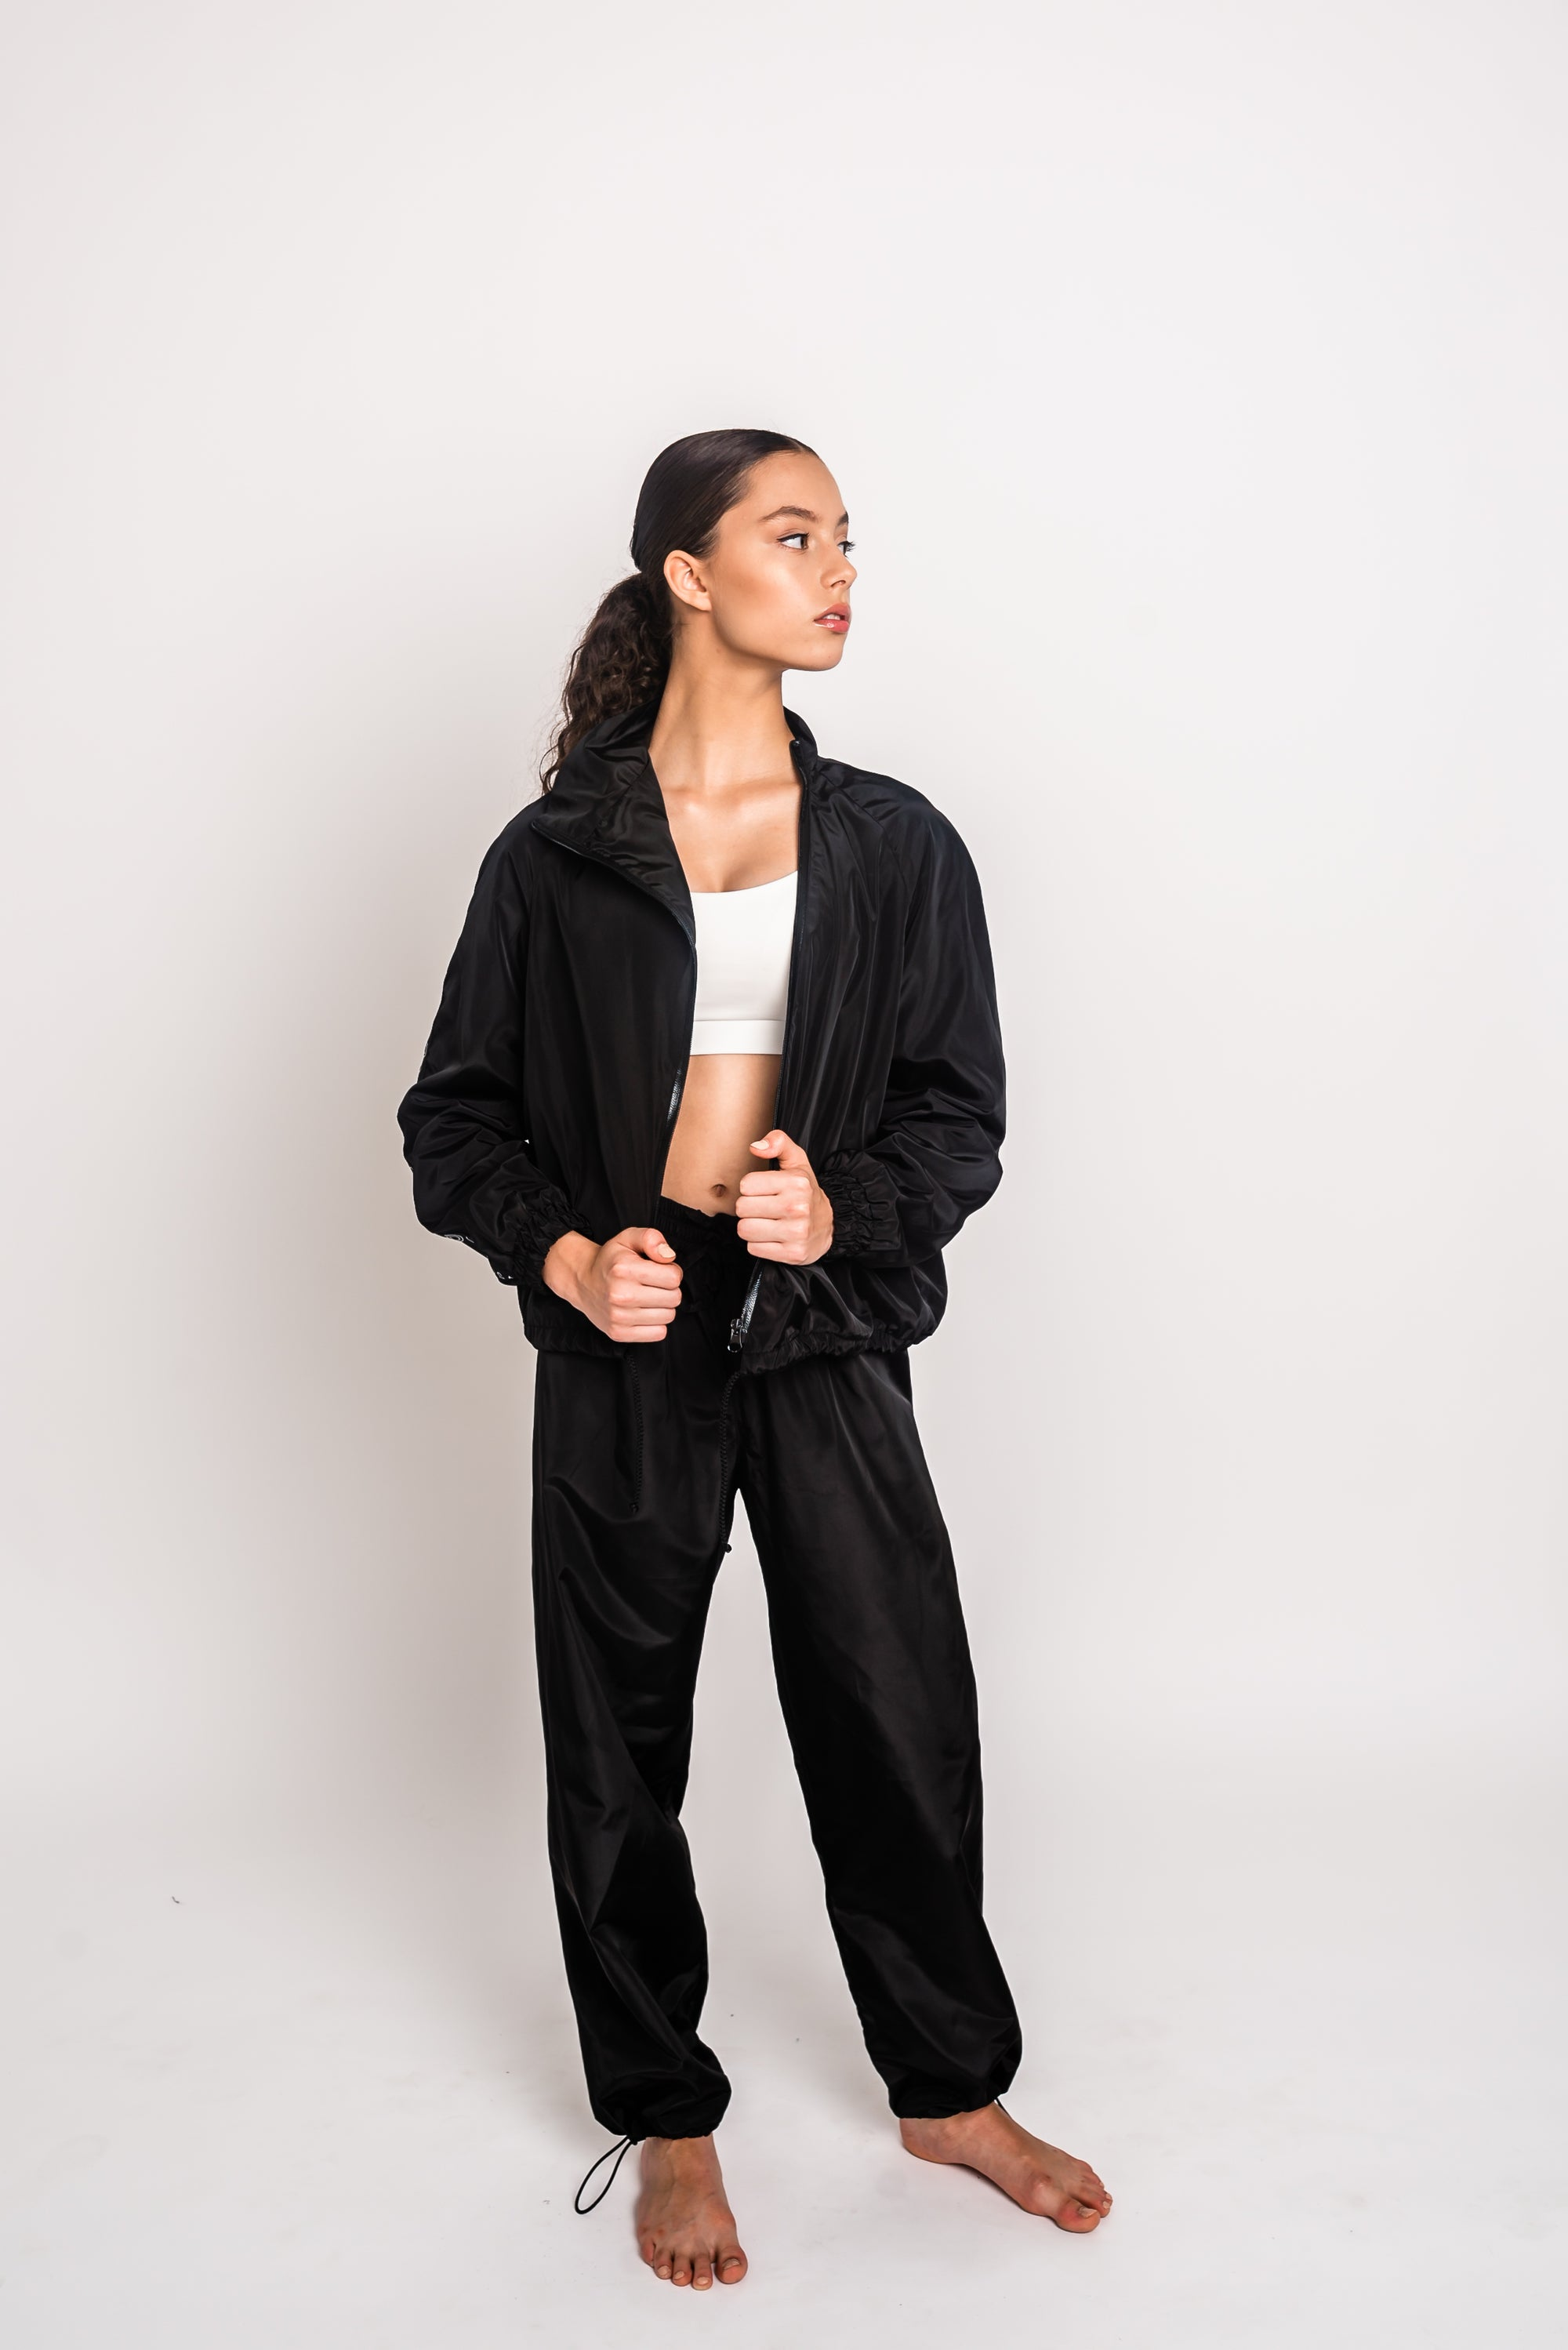 URBAN SWAN COLLECTION | Black sports suit with pants